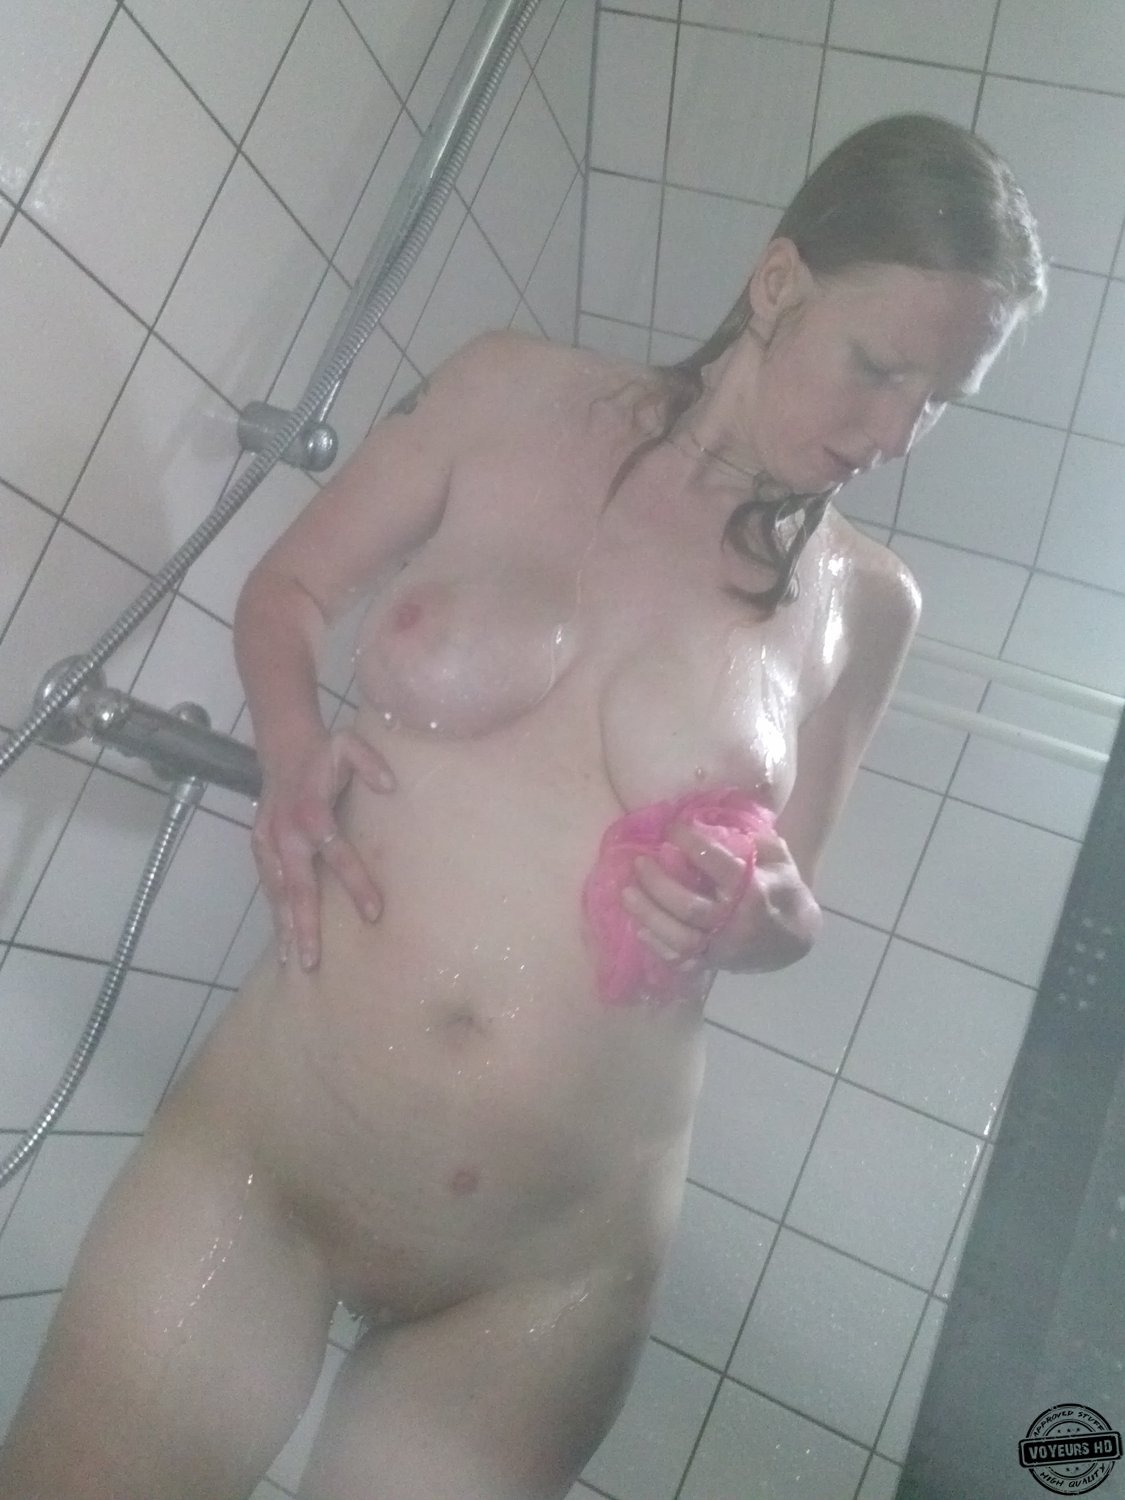 Use Young voyeur shower was also